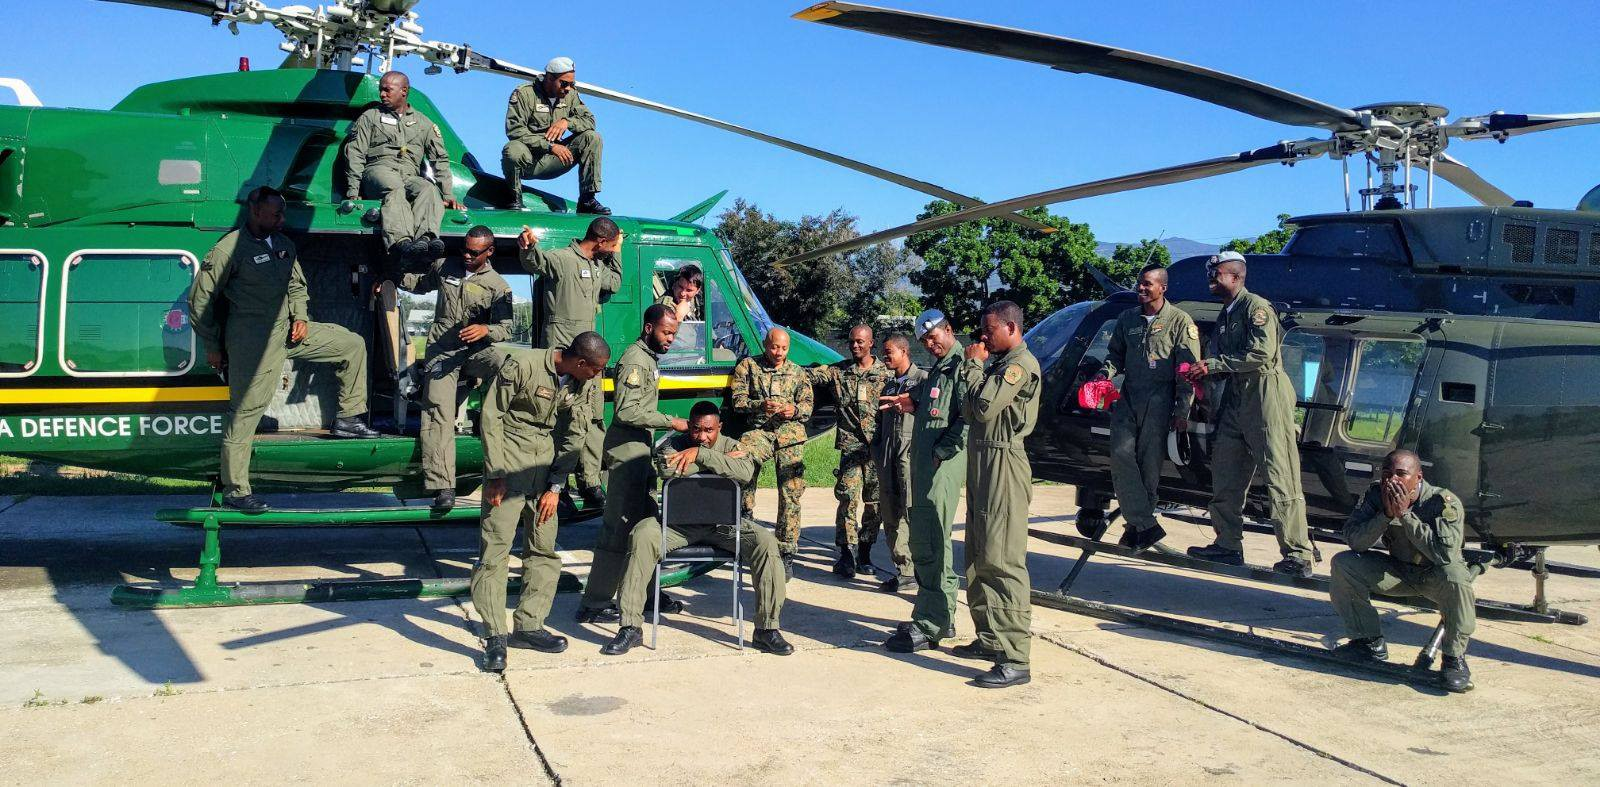 Serving In The Jamaican Air Force Sounds Like A Rough Job